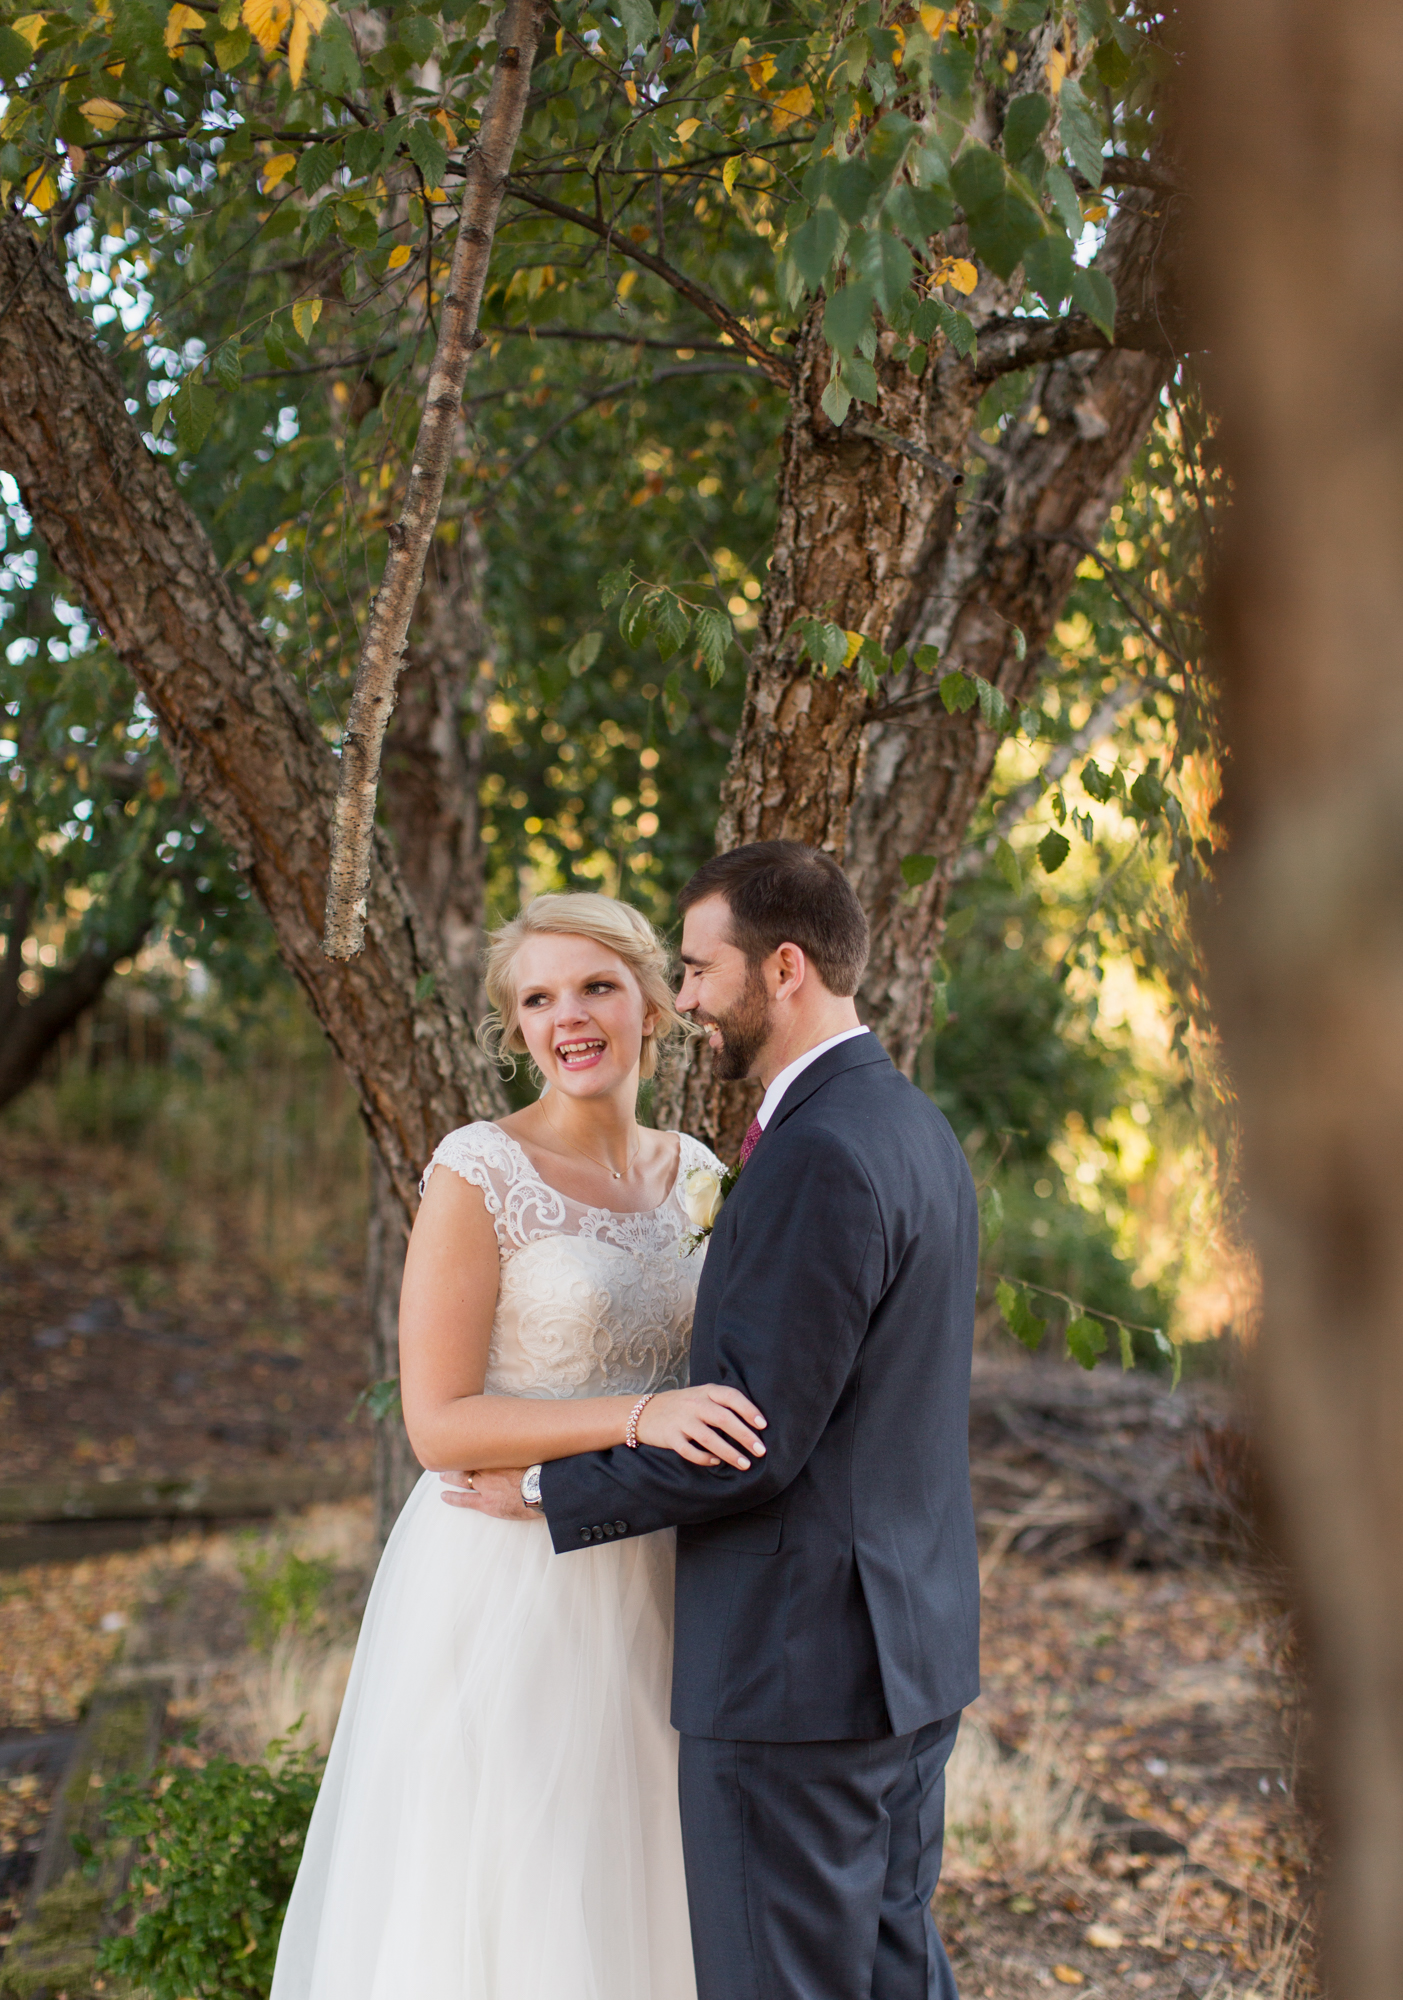 Kim+Josh- Greenville SC wedding-3093.jpg